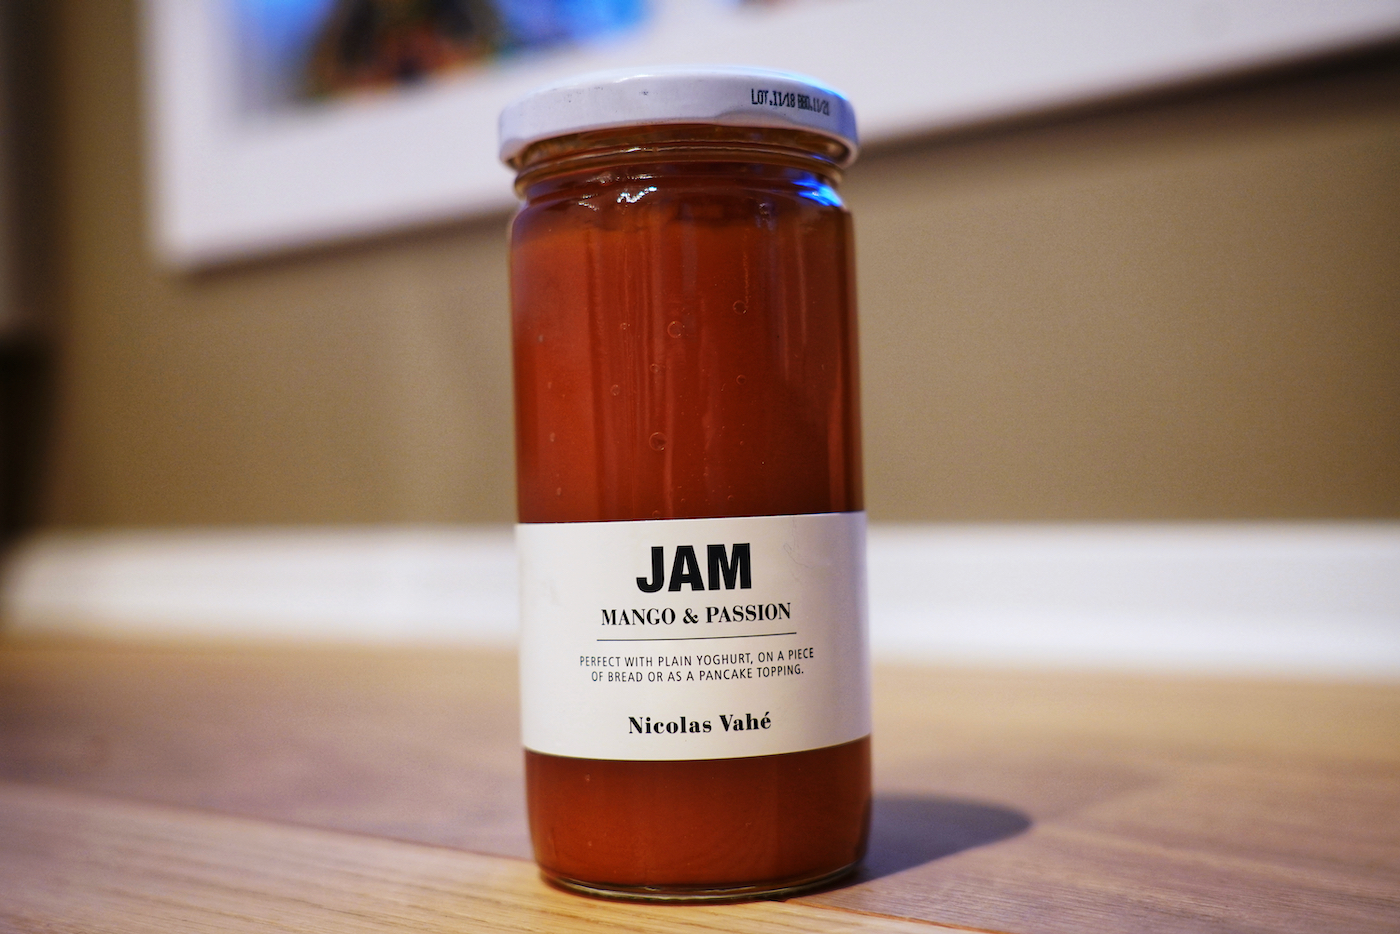 Mango and passion Jam - a match made in heaven